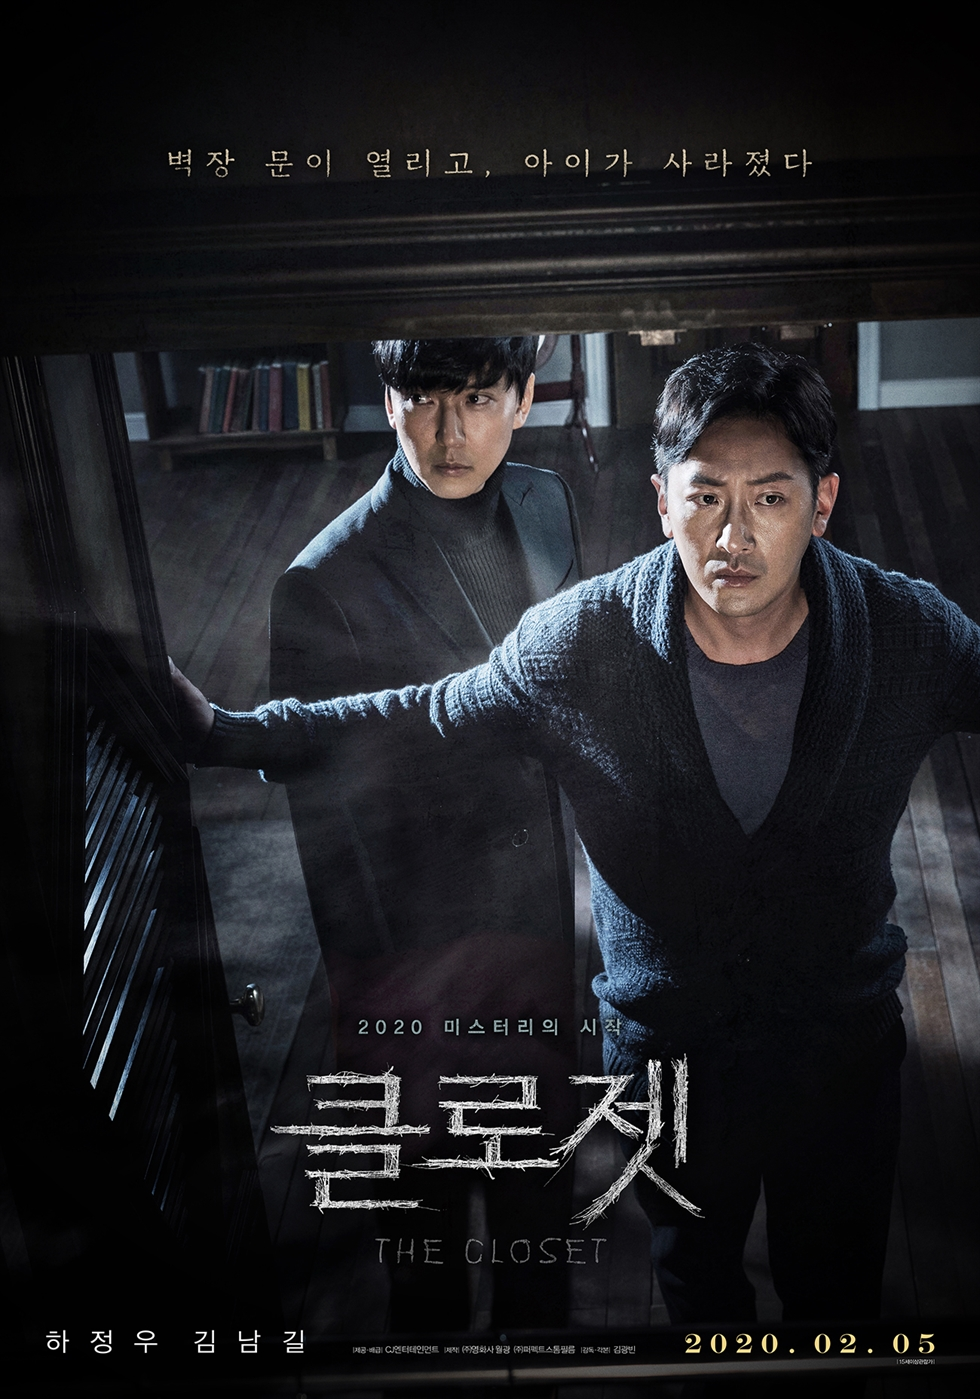 Actor Kim Nam-gil plays exorcist Kyung-hoon in new horror drama 'The Closet.' Courtesy of CJENM